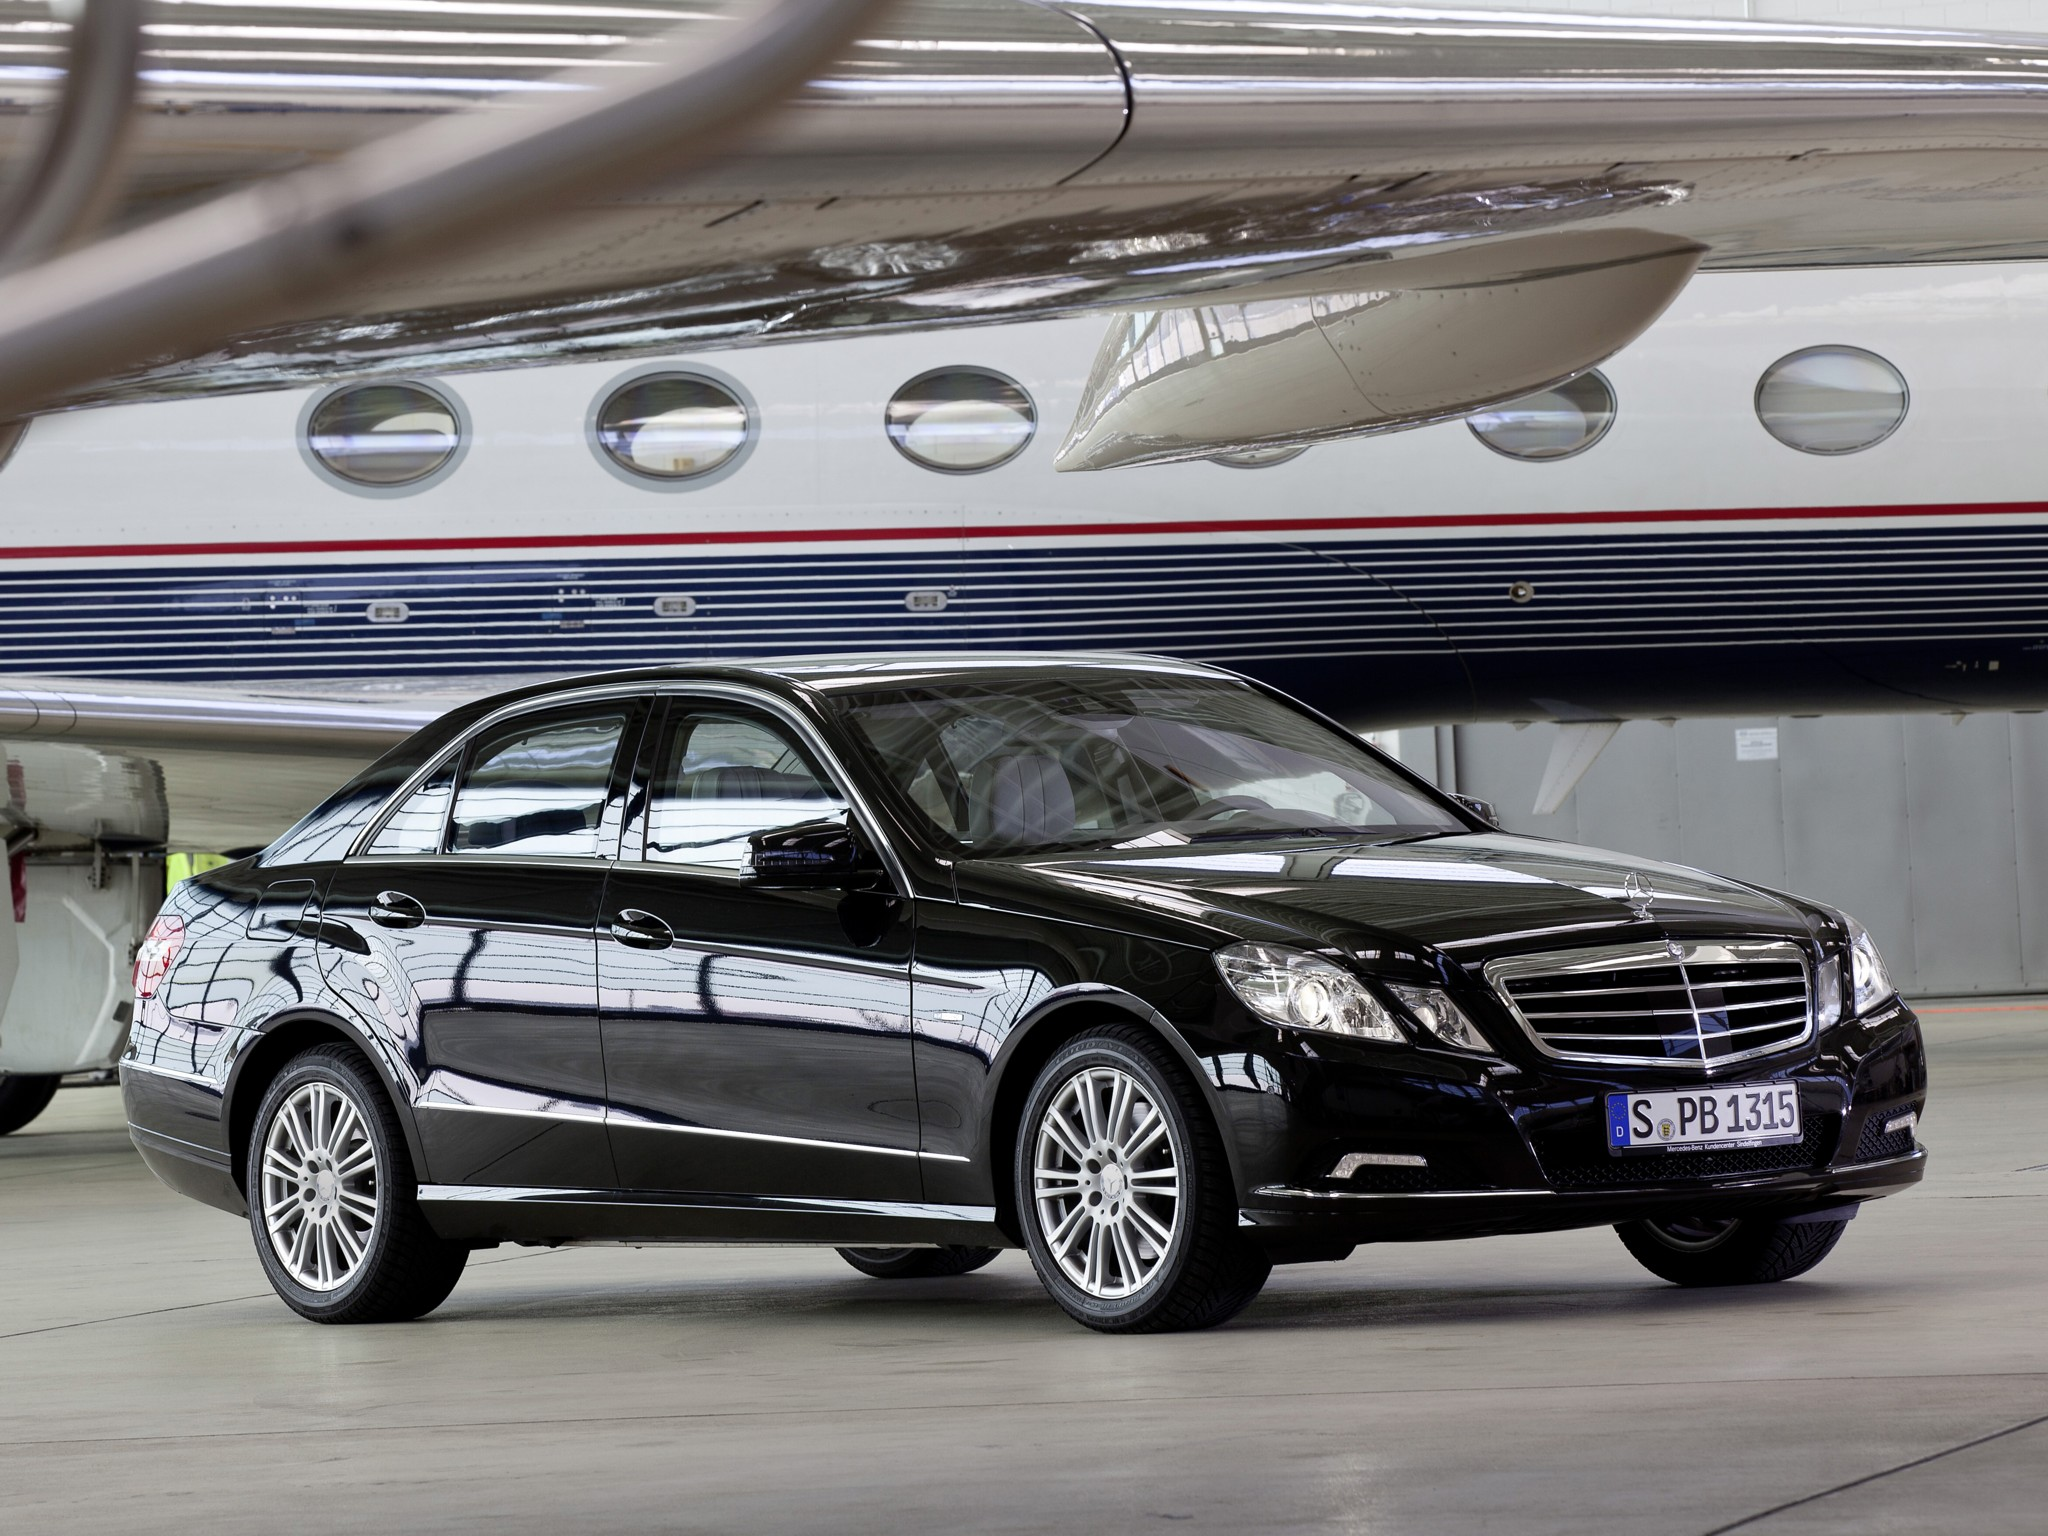 2009 armored mercedes benz e klasse guard w212 luxury gf for Mercedes benz armored